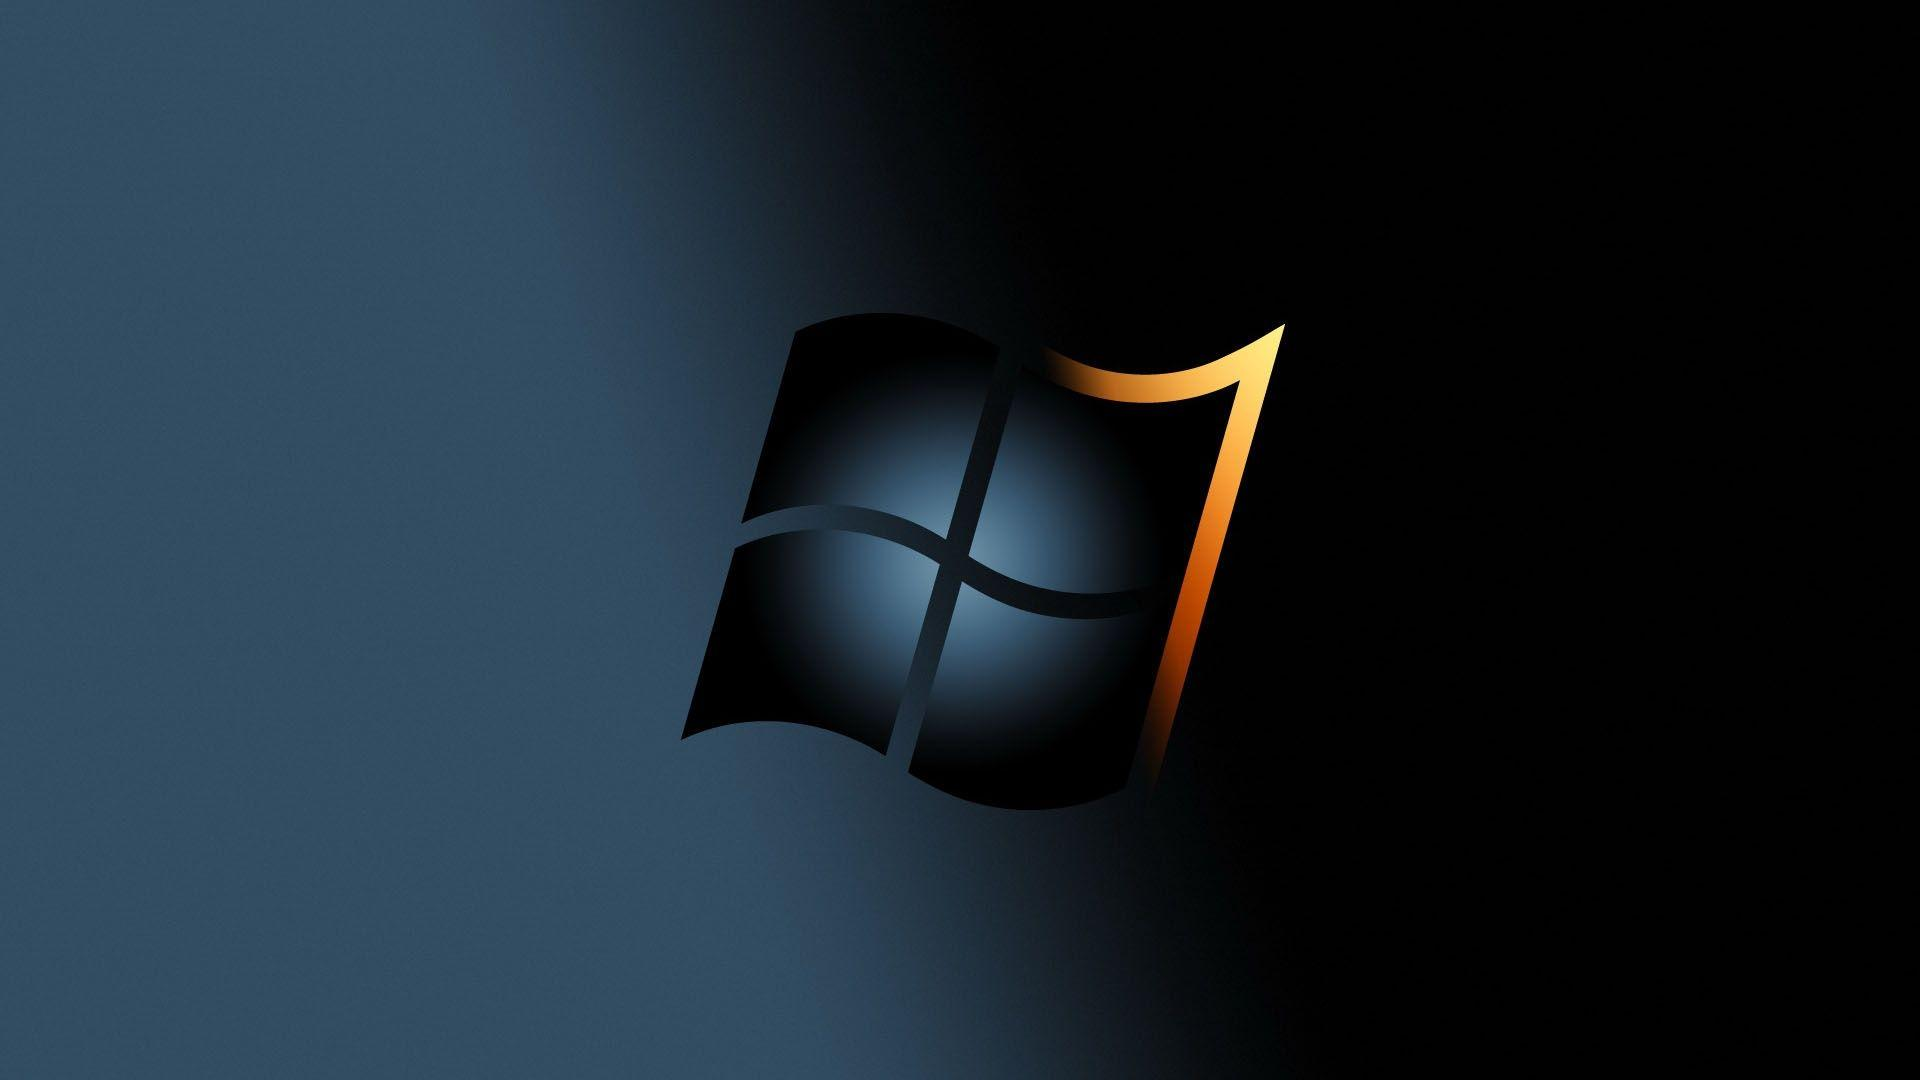 Windows 7 HD Wallpapers | fbpapa.